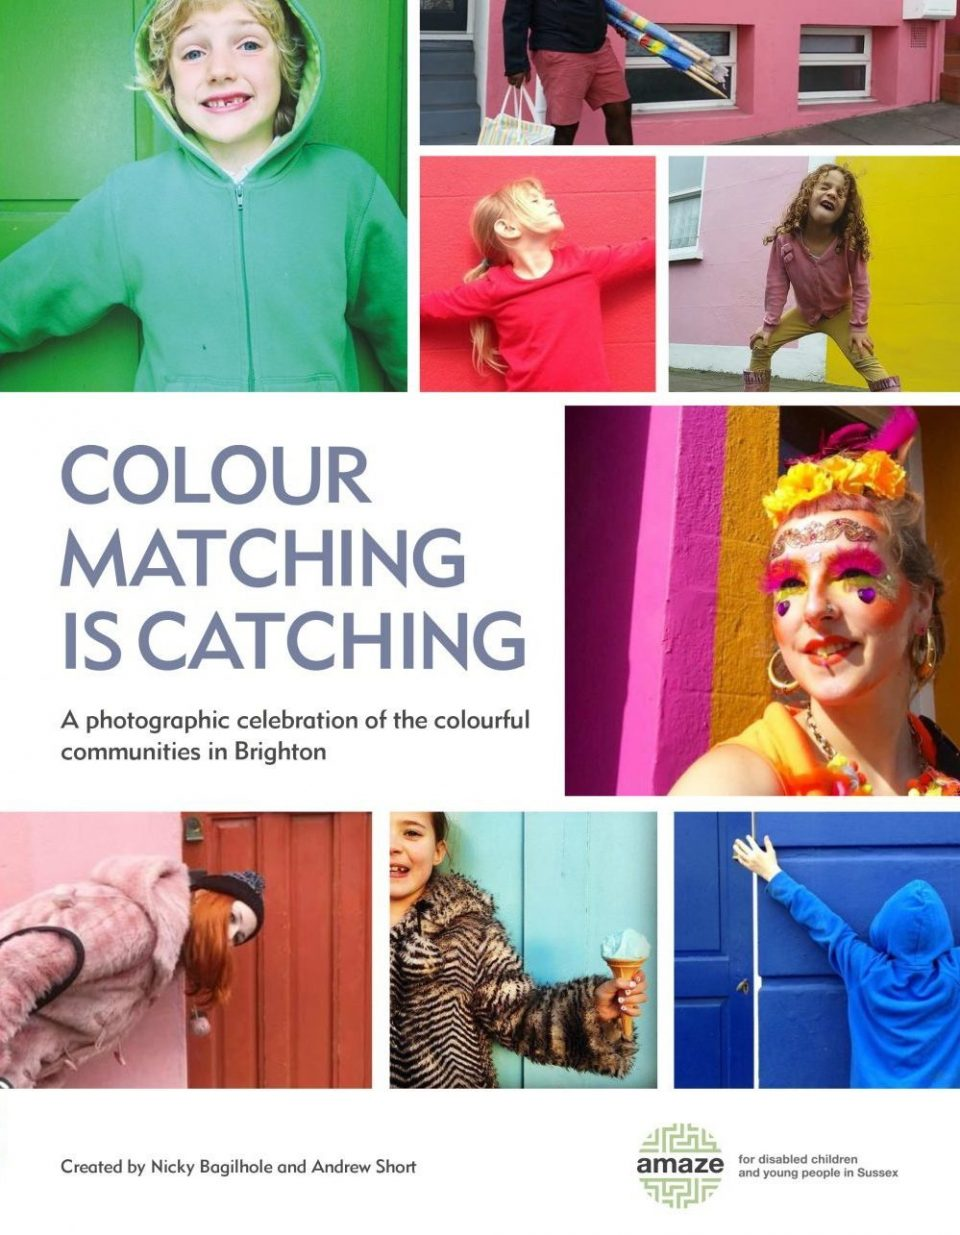 images of people wearing clothes or make up matching the colours of their surroundings, and the words colour matching is catching